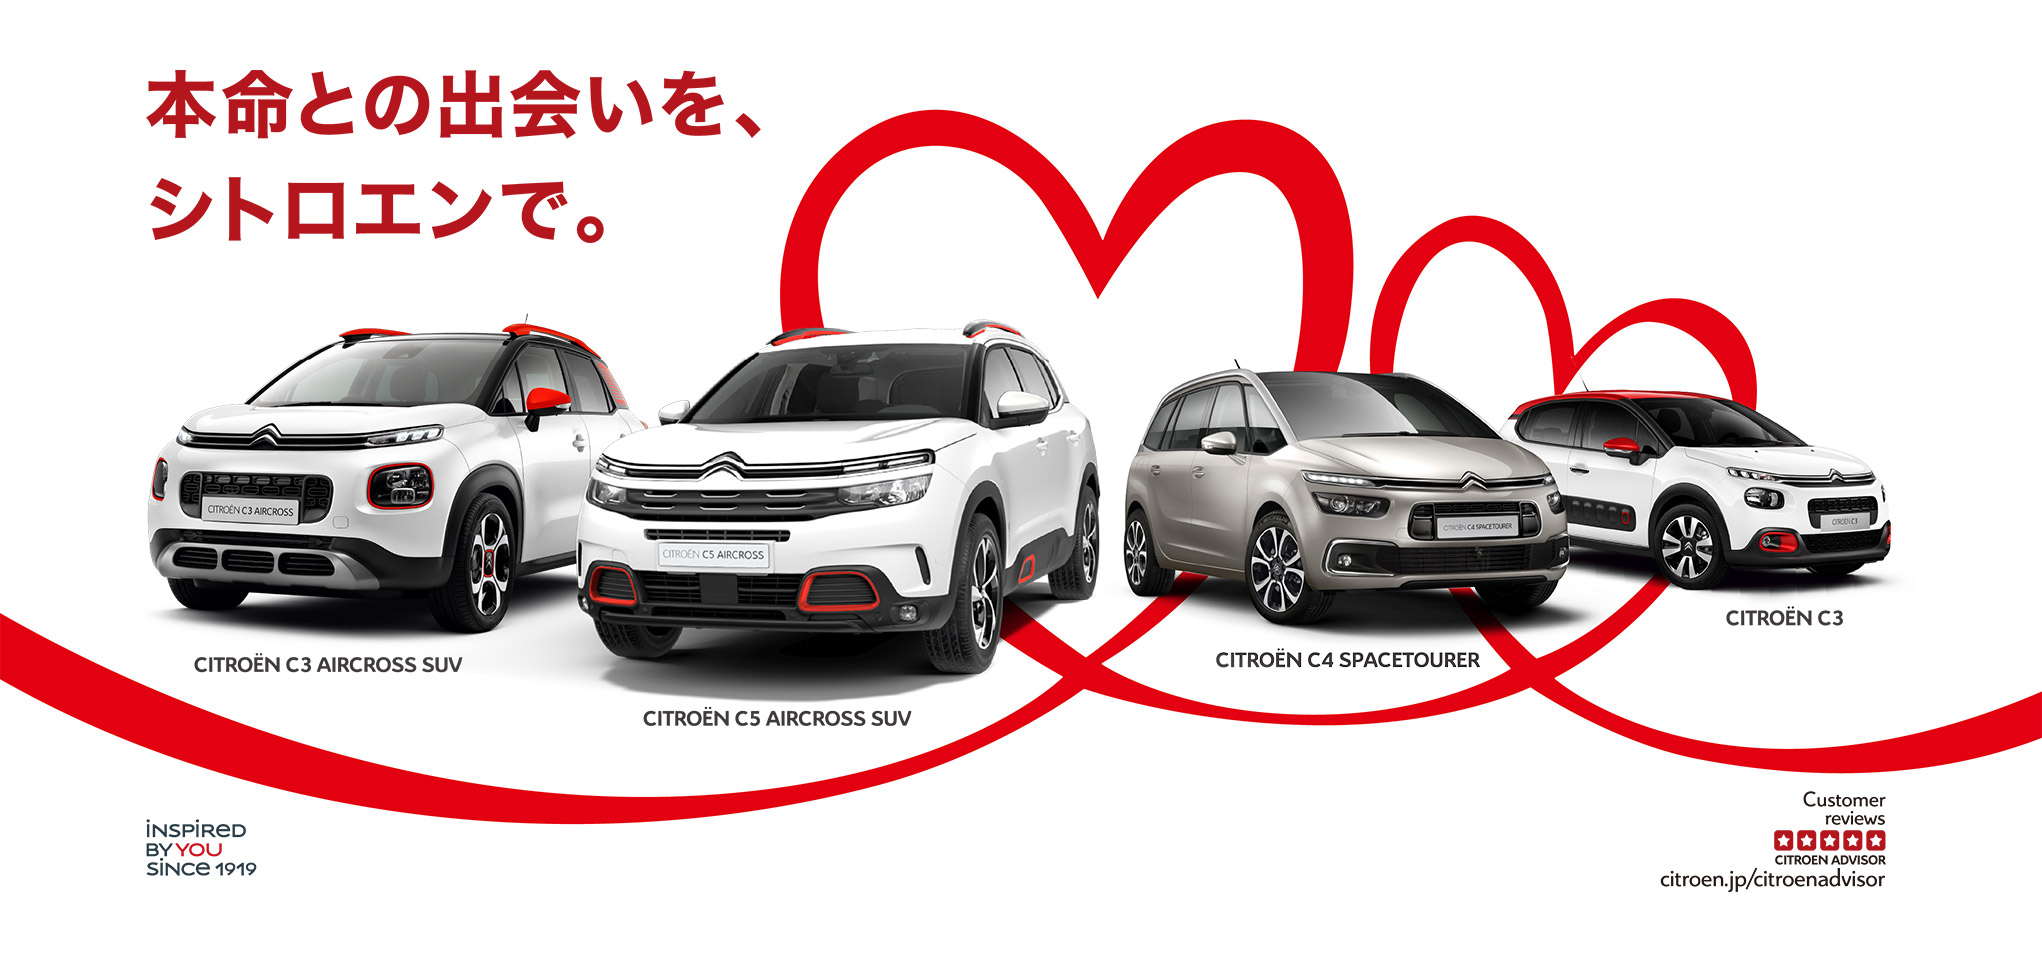 シトロエン広島 CITROËN HAPPY VALENTINE CAMPAIGN(2/1~2/14)